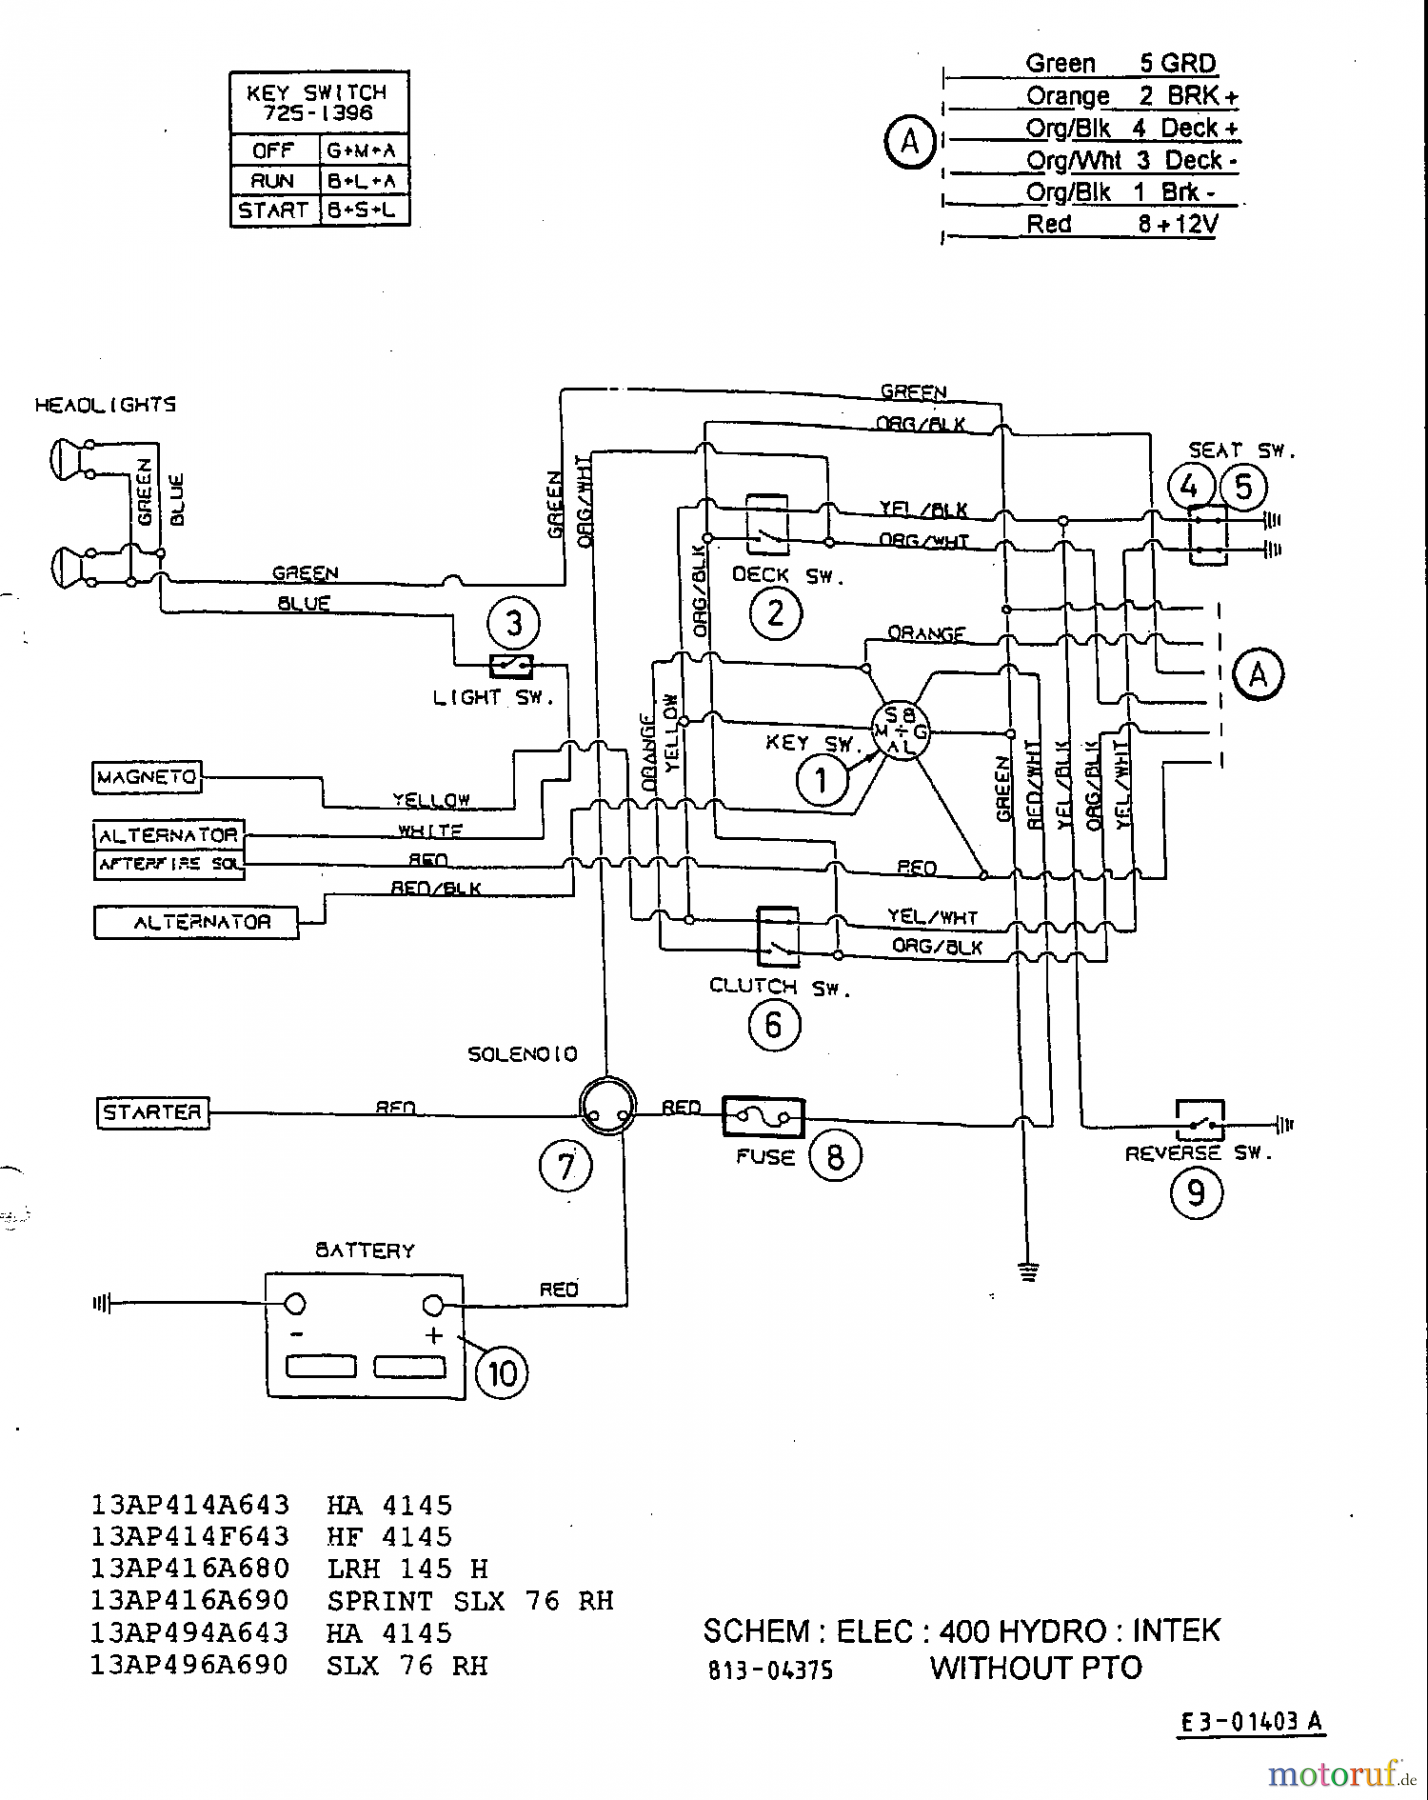 small resolution of 145hp 42quot lawn tractor diagram and parts list for mtd ridingmower 46quot deck electric pto diagram and parts list for mtd ridingmower